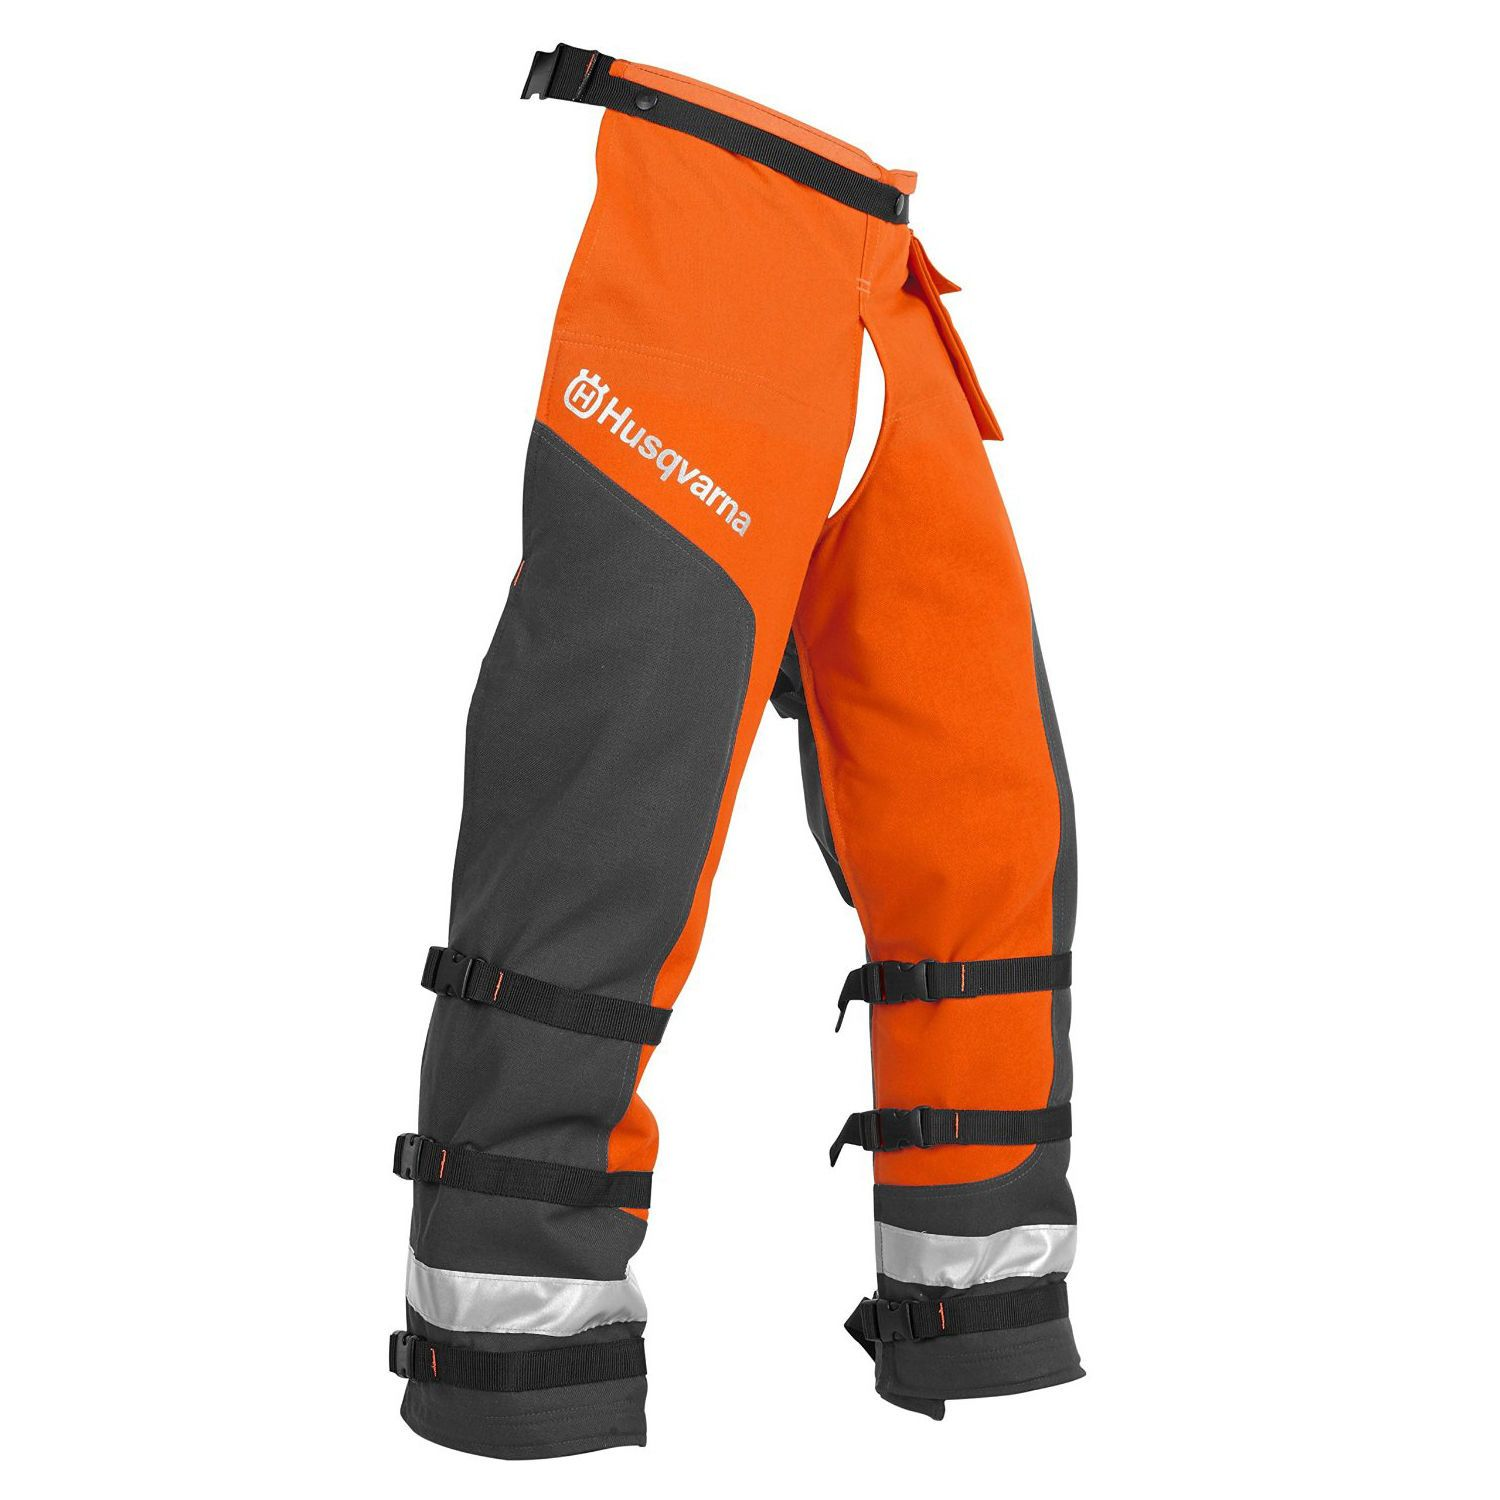 Husqvarna Technical Apron Wrap Chainsaw Chaps, 3642Inch